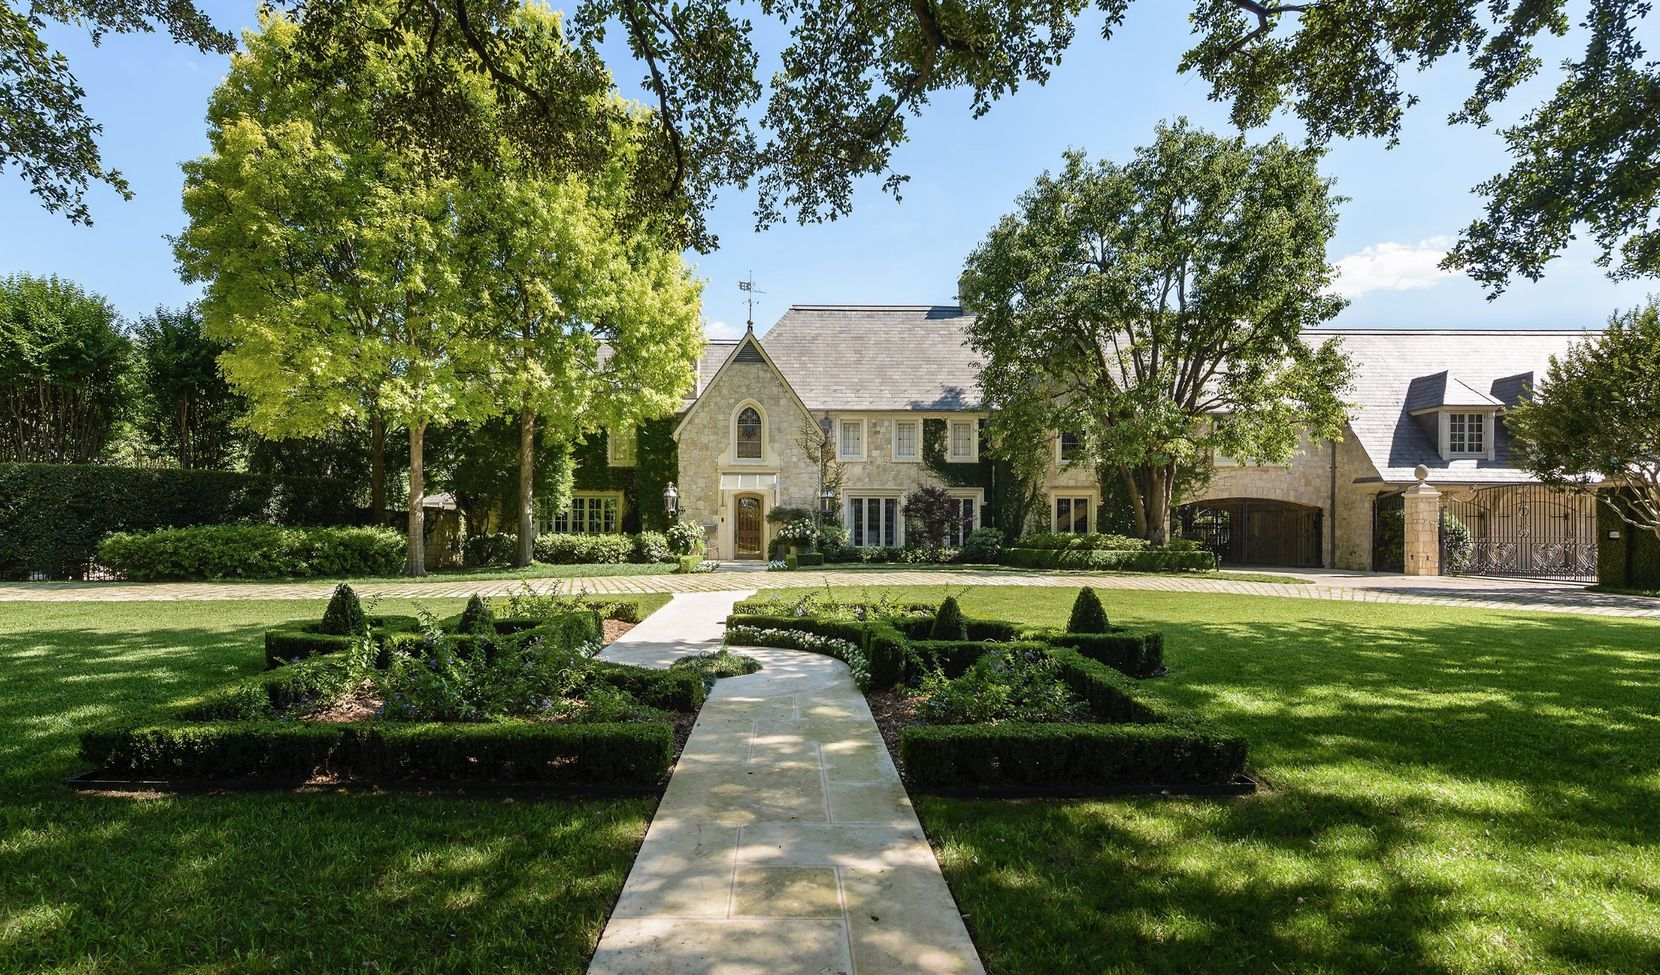 With a price tage of $39 million, 6767 Hunters Glen Drive in University Park is the most expensive home for sale in North Texas. The almost 13,000-square-foot house sits on about 3 acres.